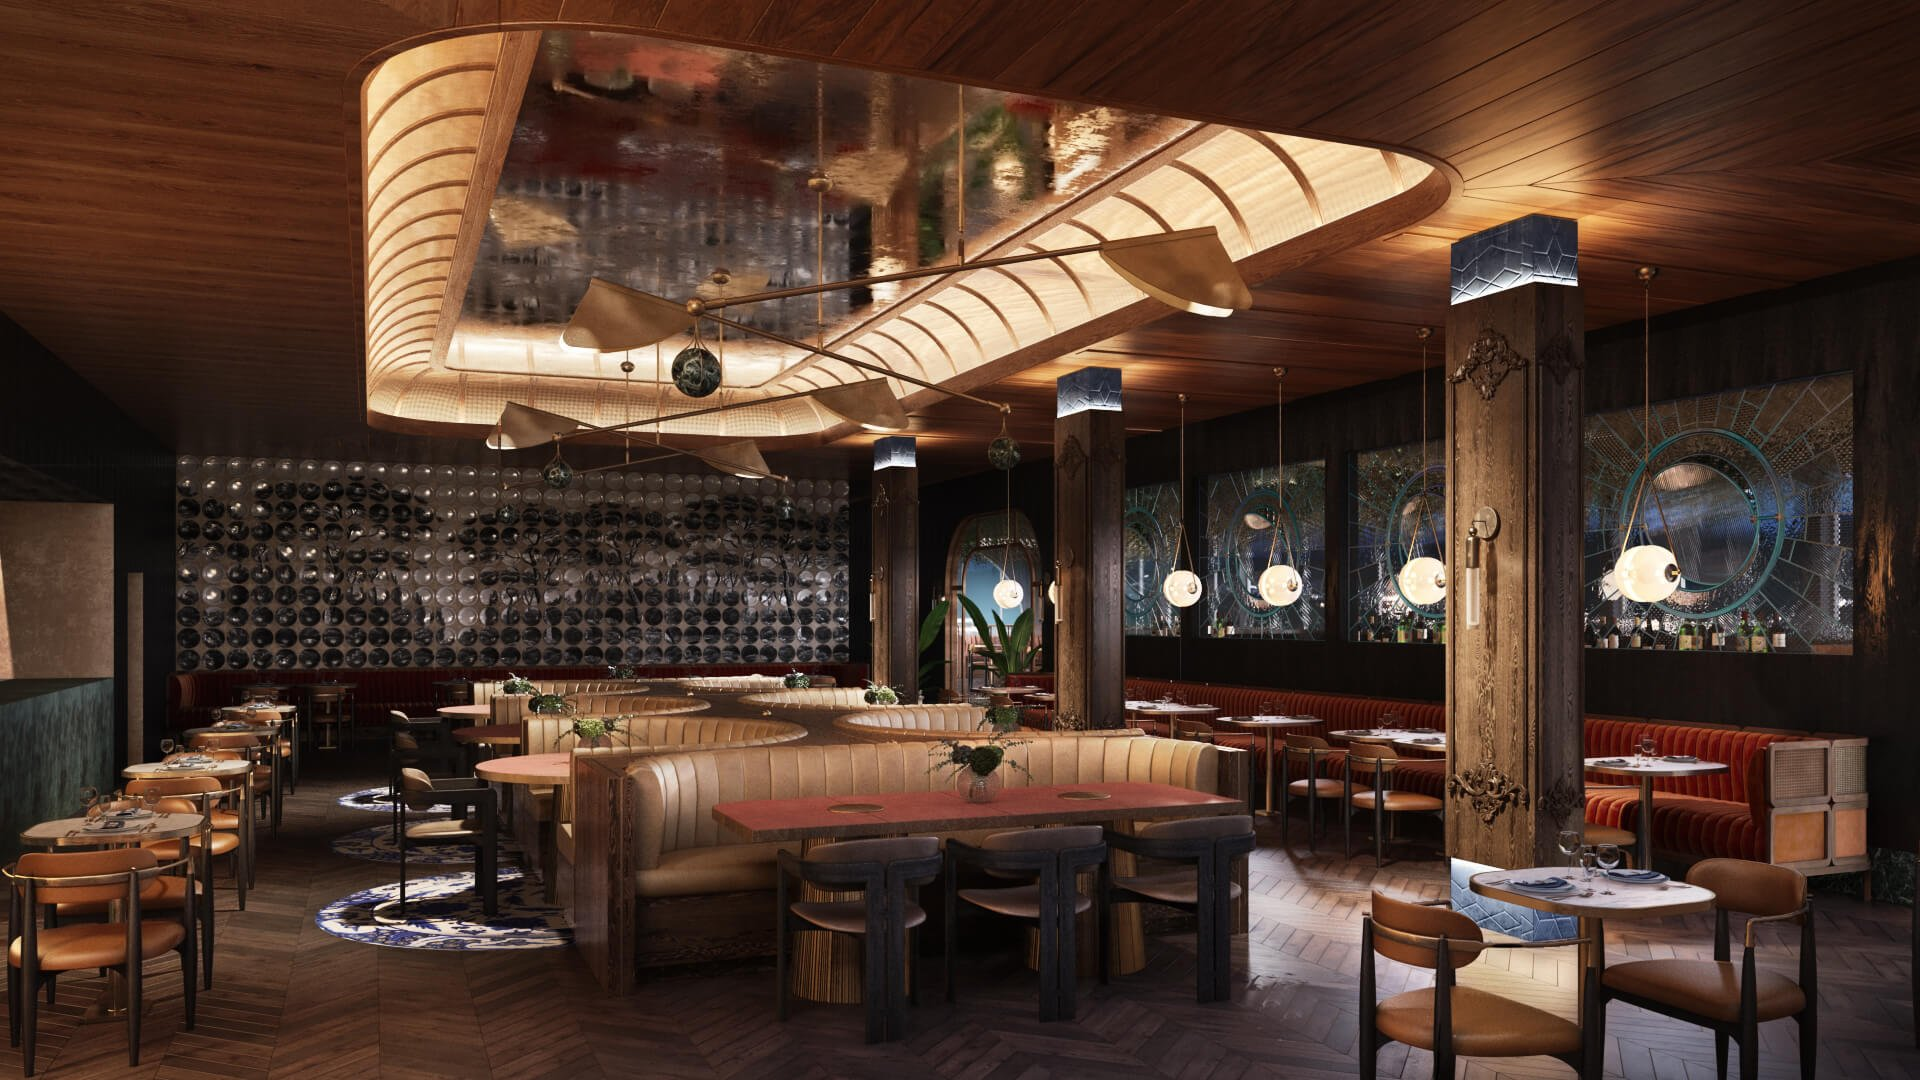 Preliminary Rendering Results of a Restaurant Hall